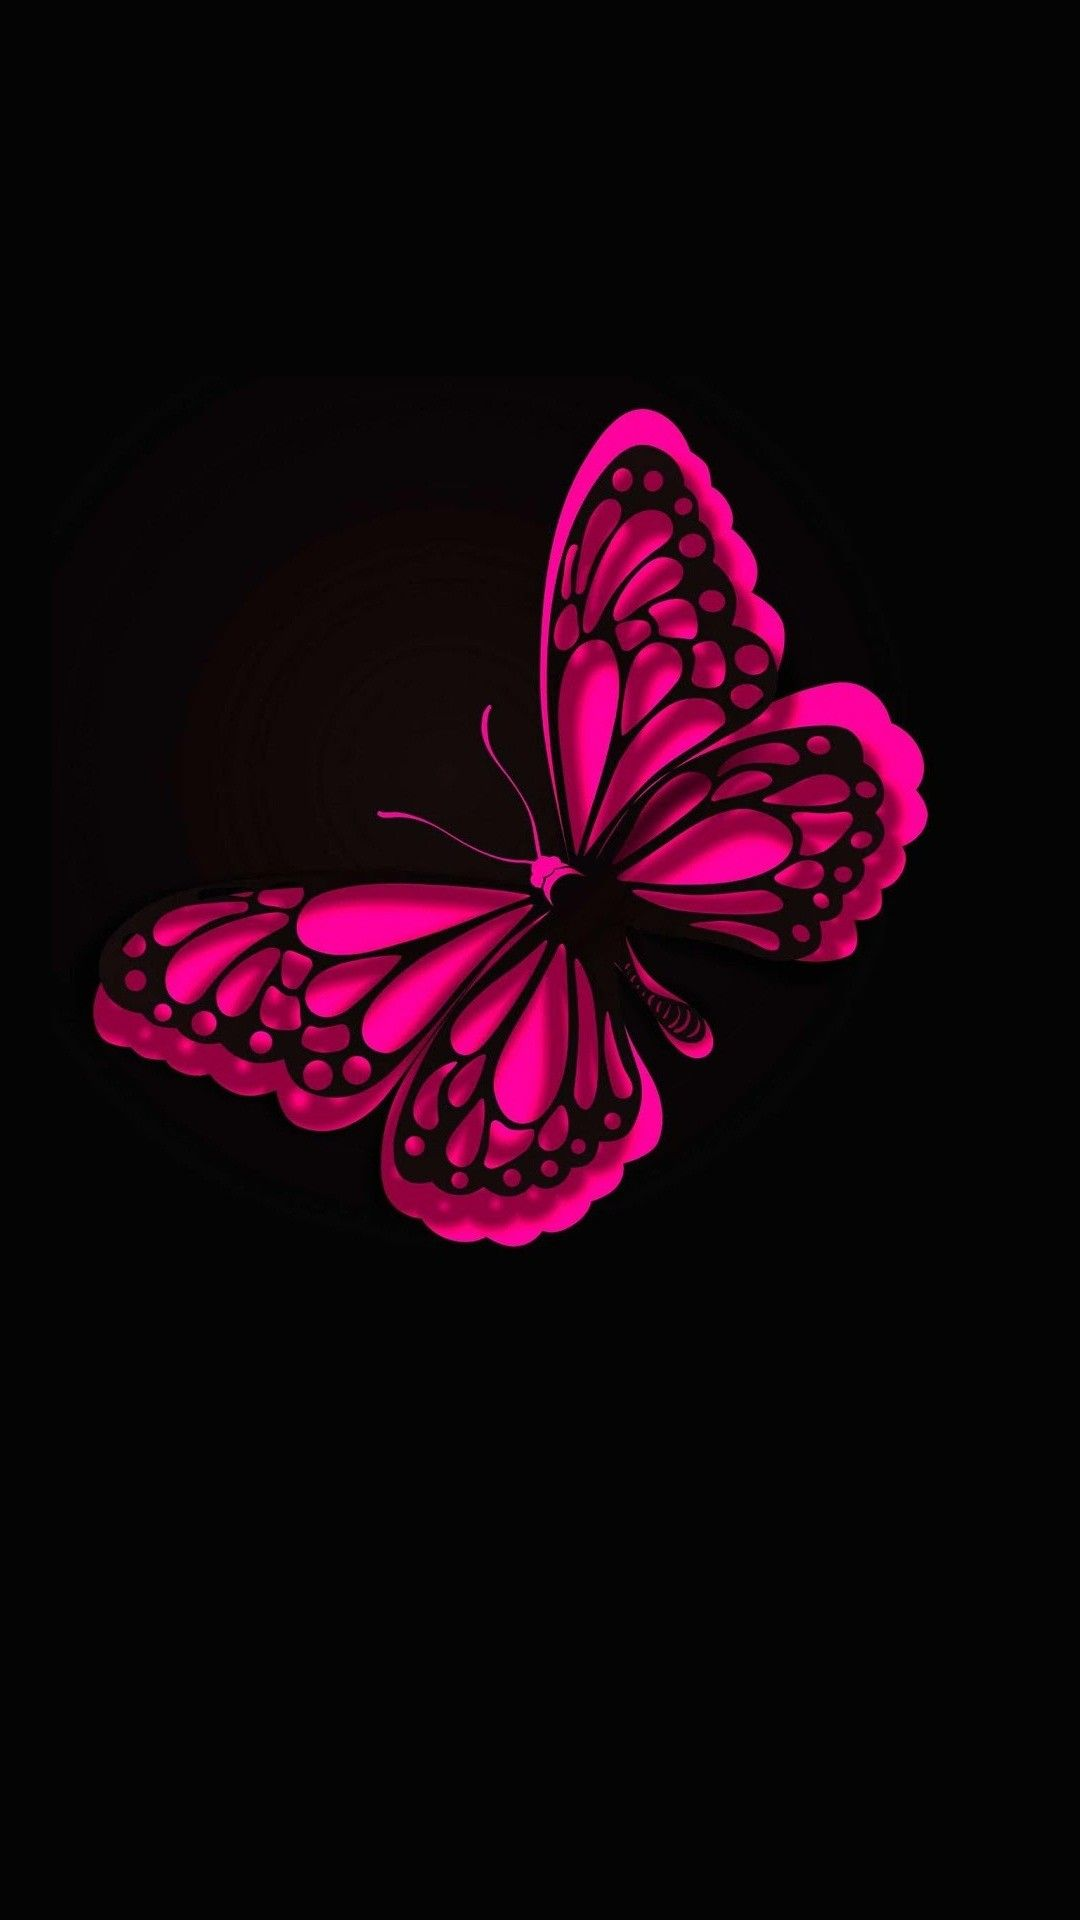 iPhone Wallpaper HD Pink Butterfly Best HD Wallpapers 1080x1920